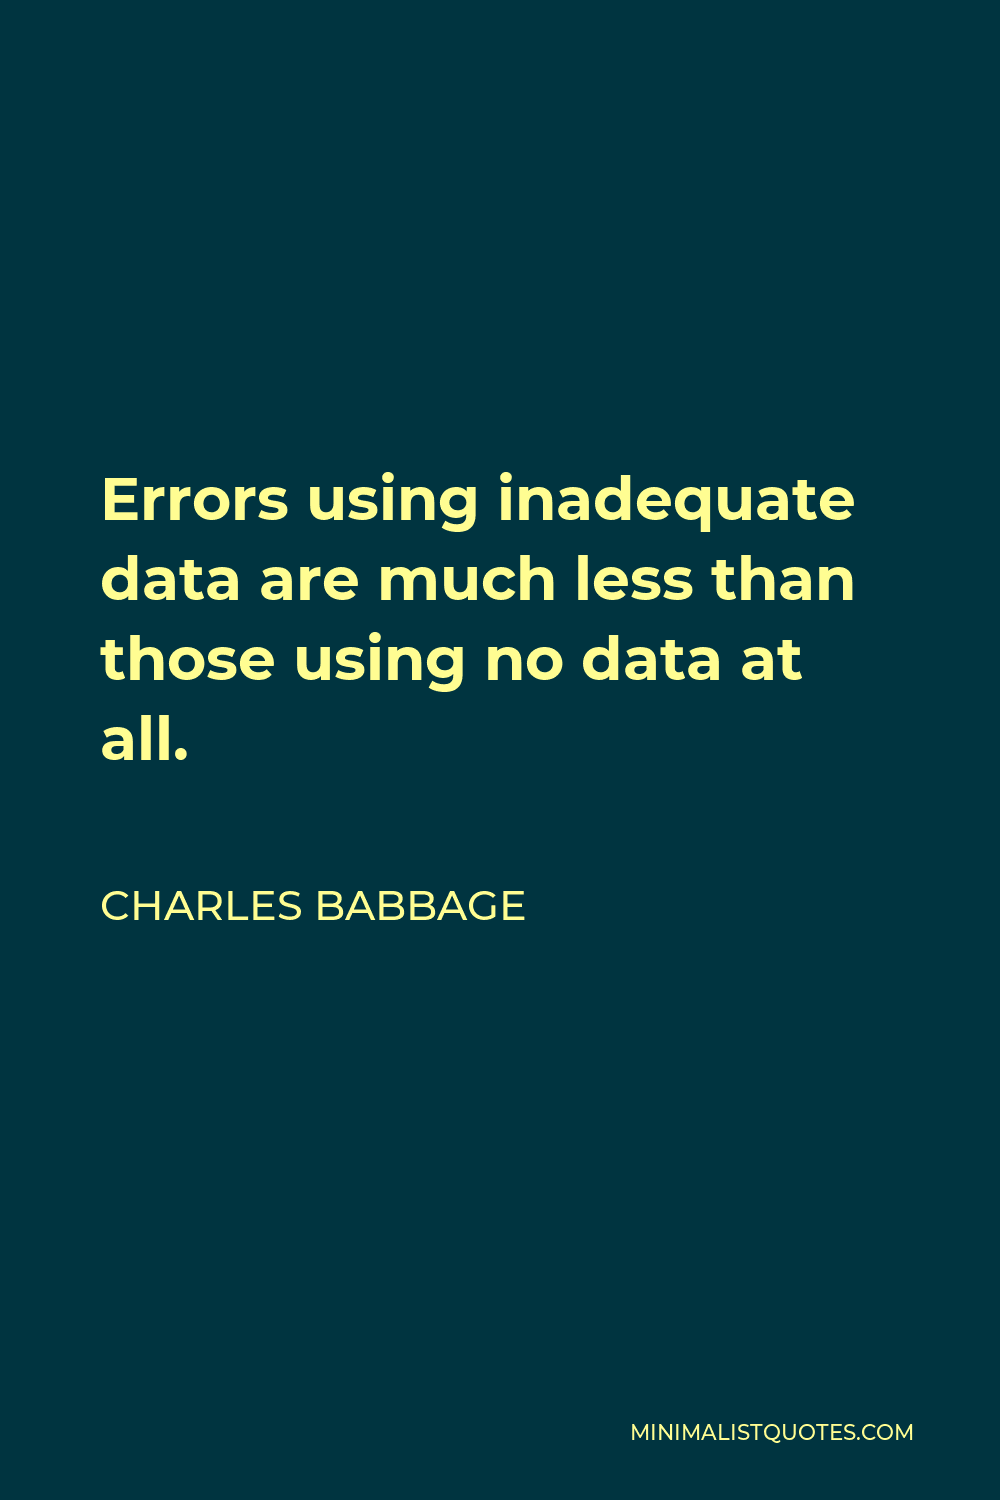 Charles Babbage Quote - Errors using inadequate data are much less than those using no data at all.